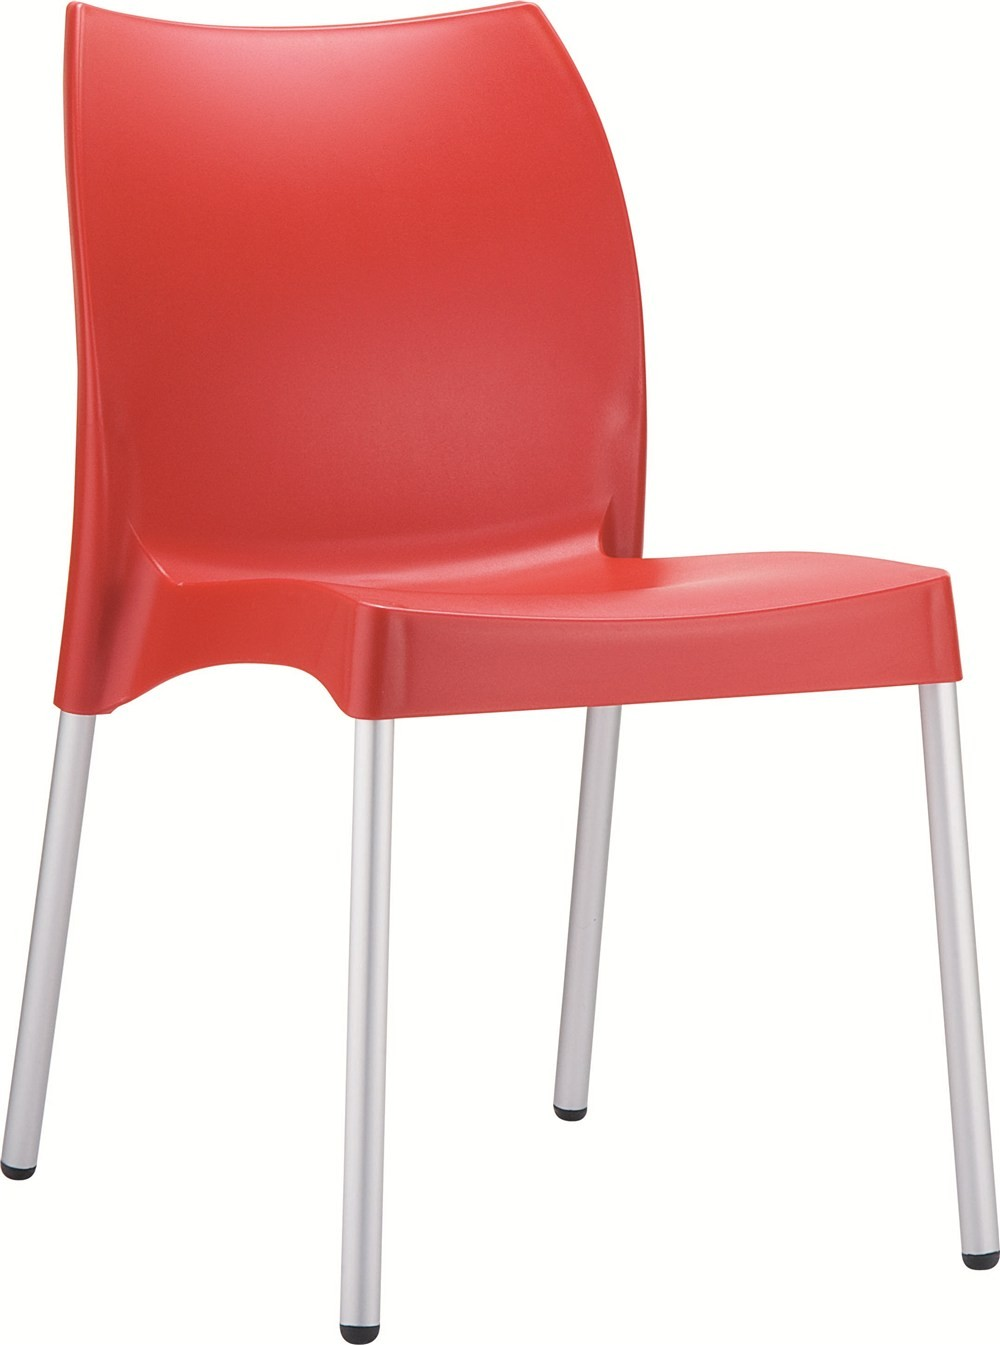 Vina Cafe Chair